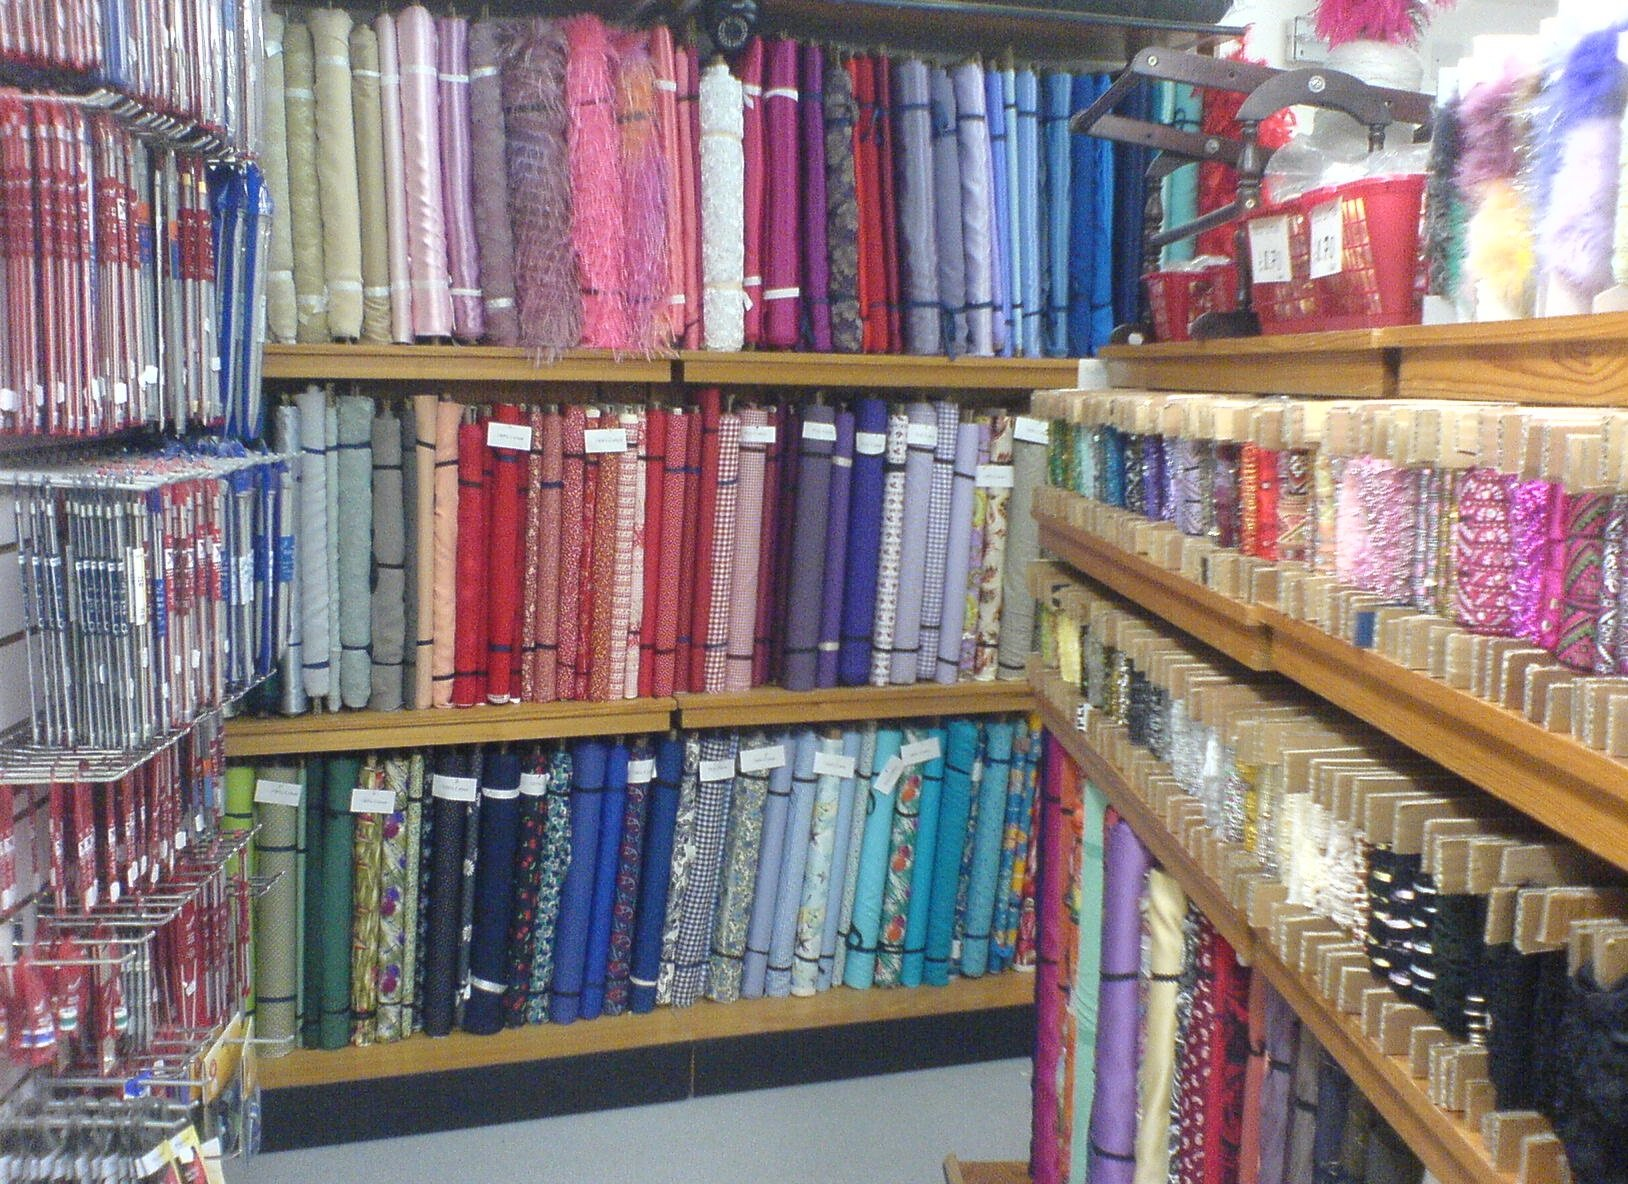 Rolls of patterns in The Sewing Shop